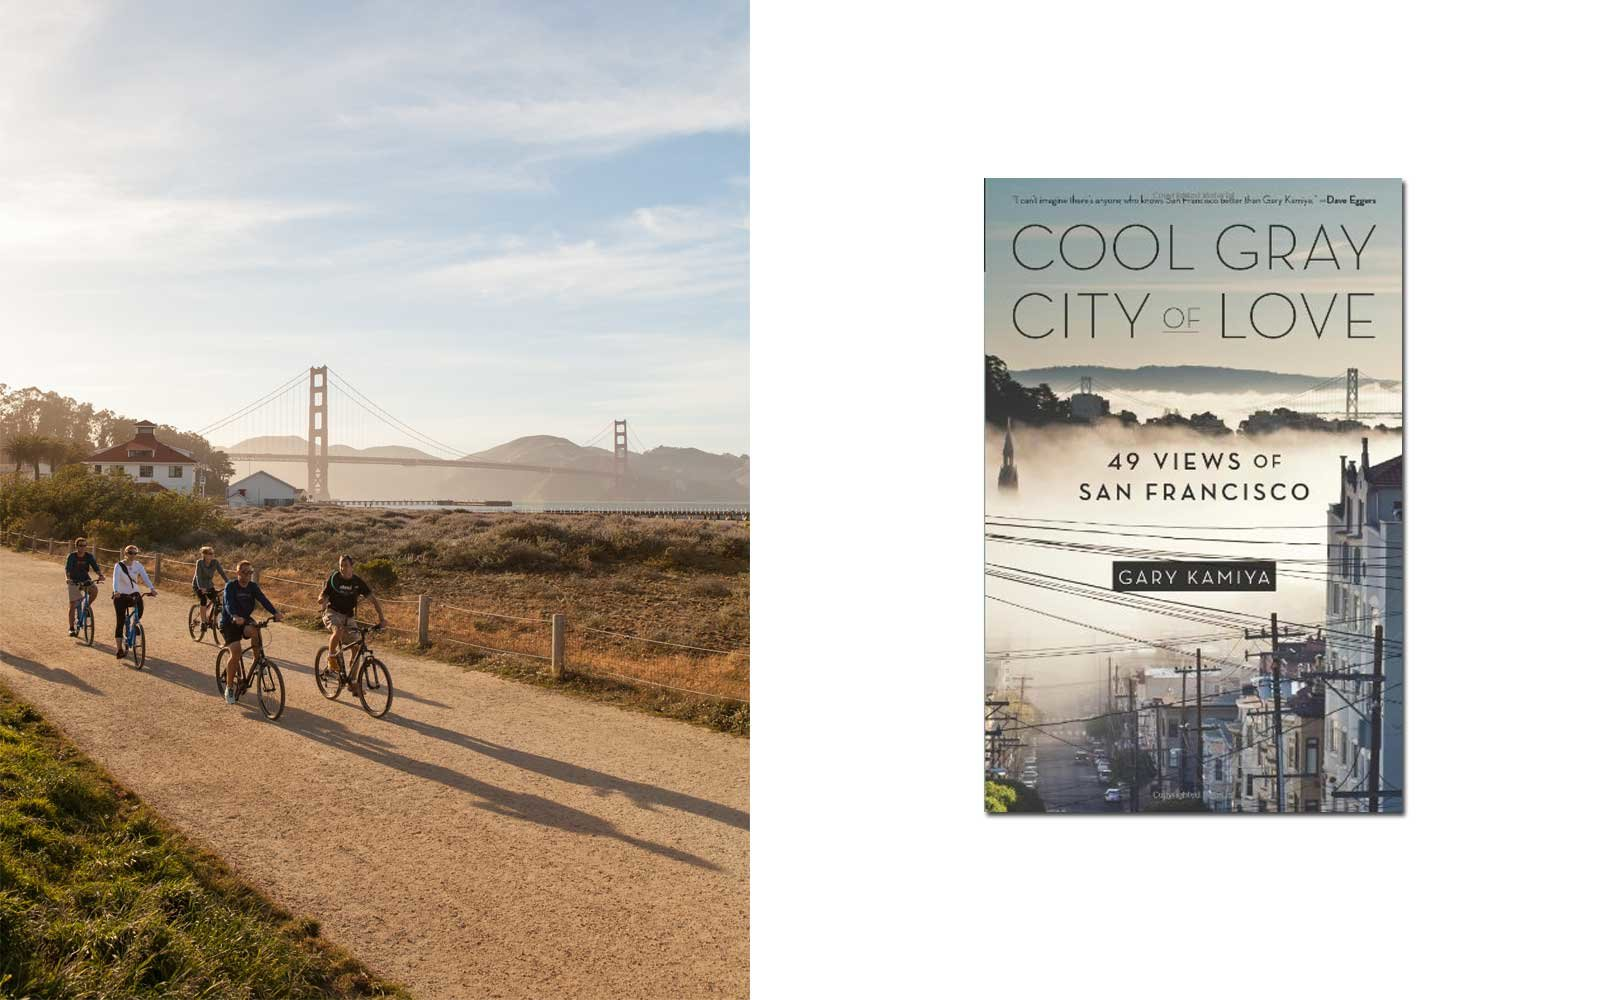 Books To Read Based On City